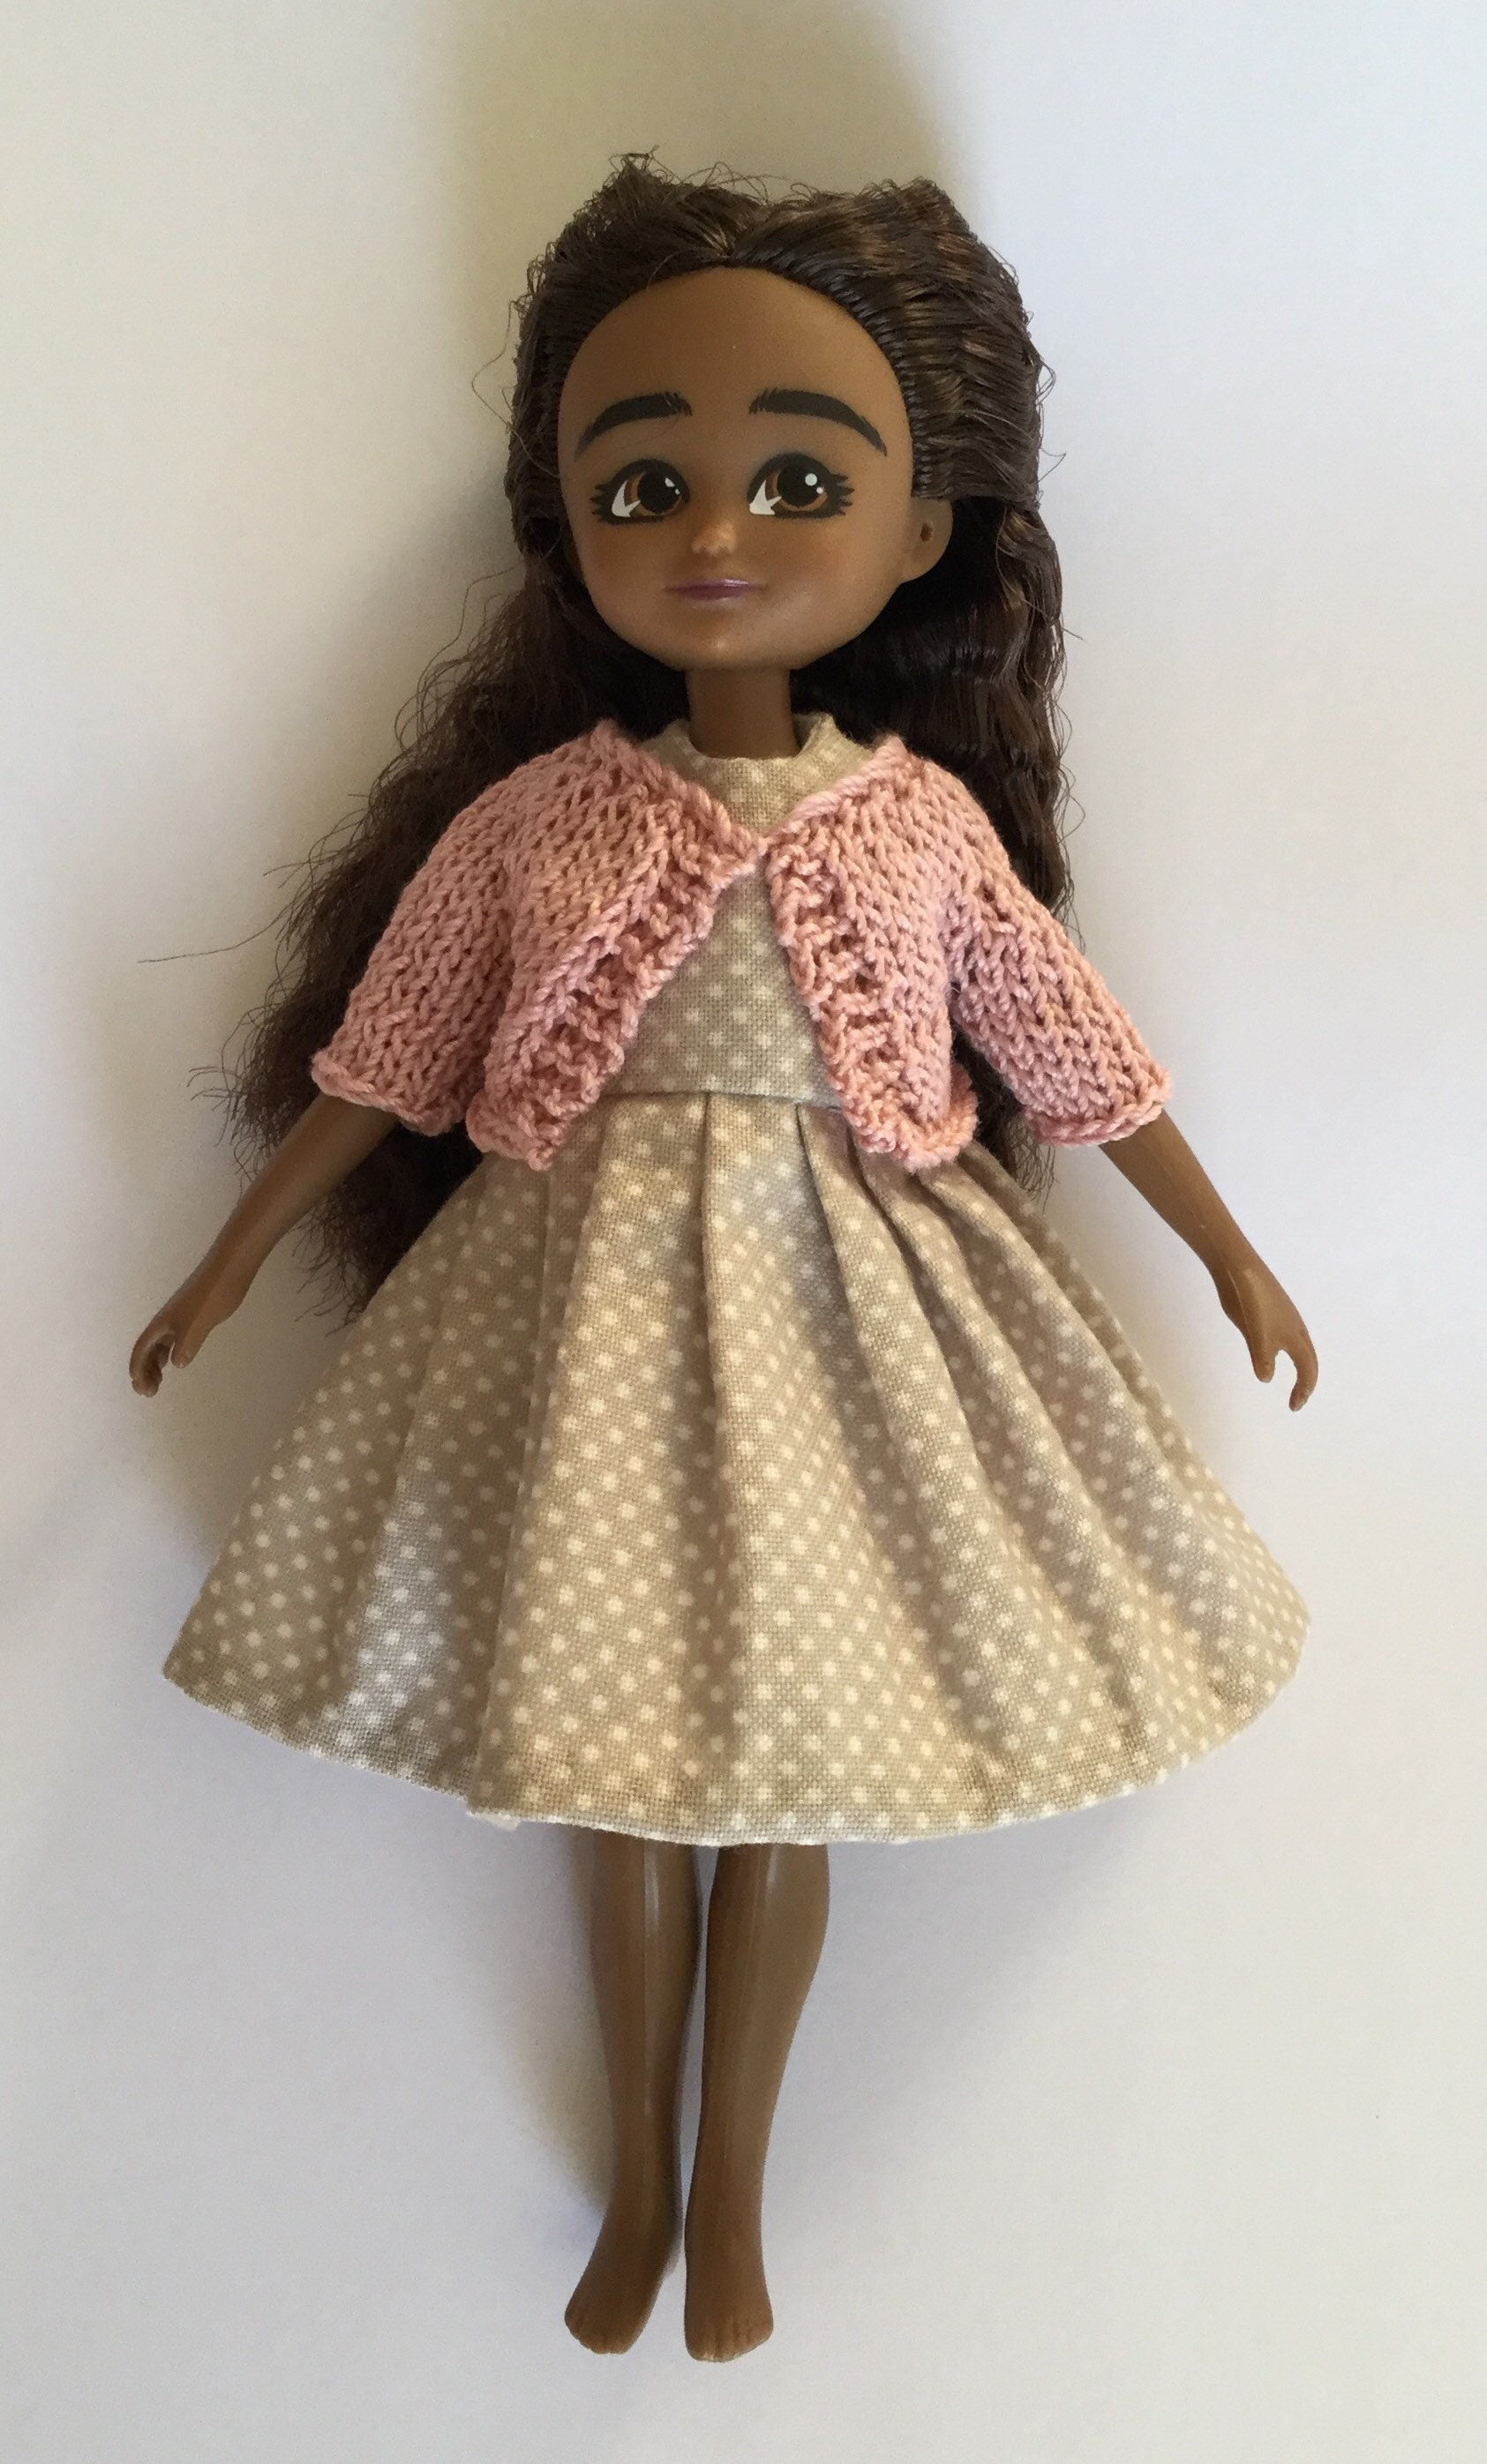 7 Lottie Doll Dress and Cardigan Pattern PDF Sewing and Knitting ...